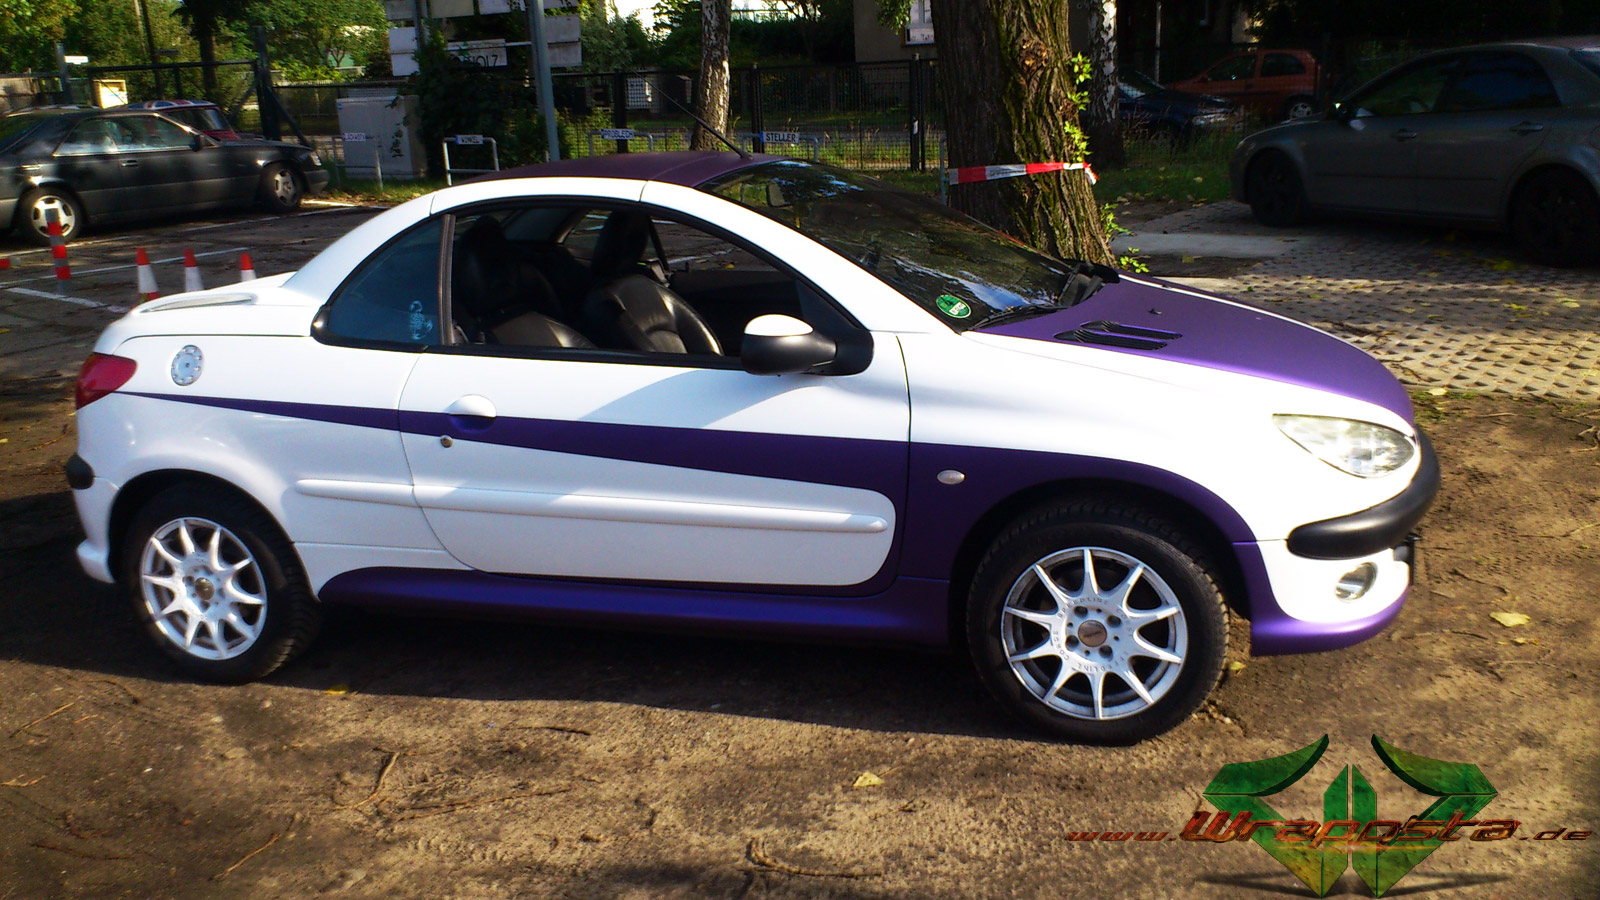 peugeot 206cc glanz weiss purple matte metallic wrappsta berlin. Black Bedroom Furniture Sets. Home Design Ideas